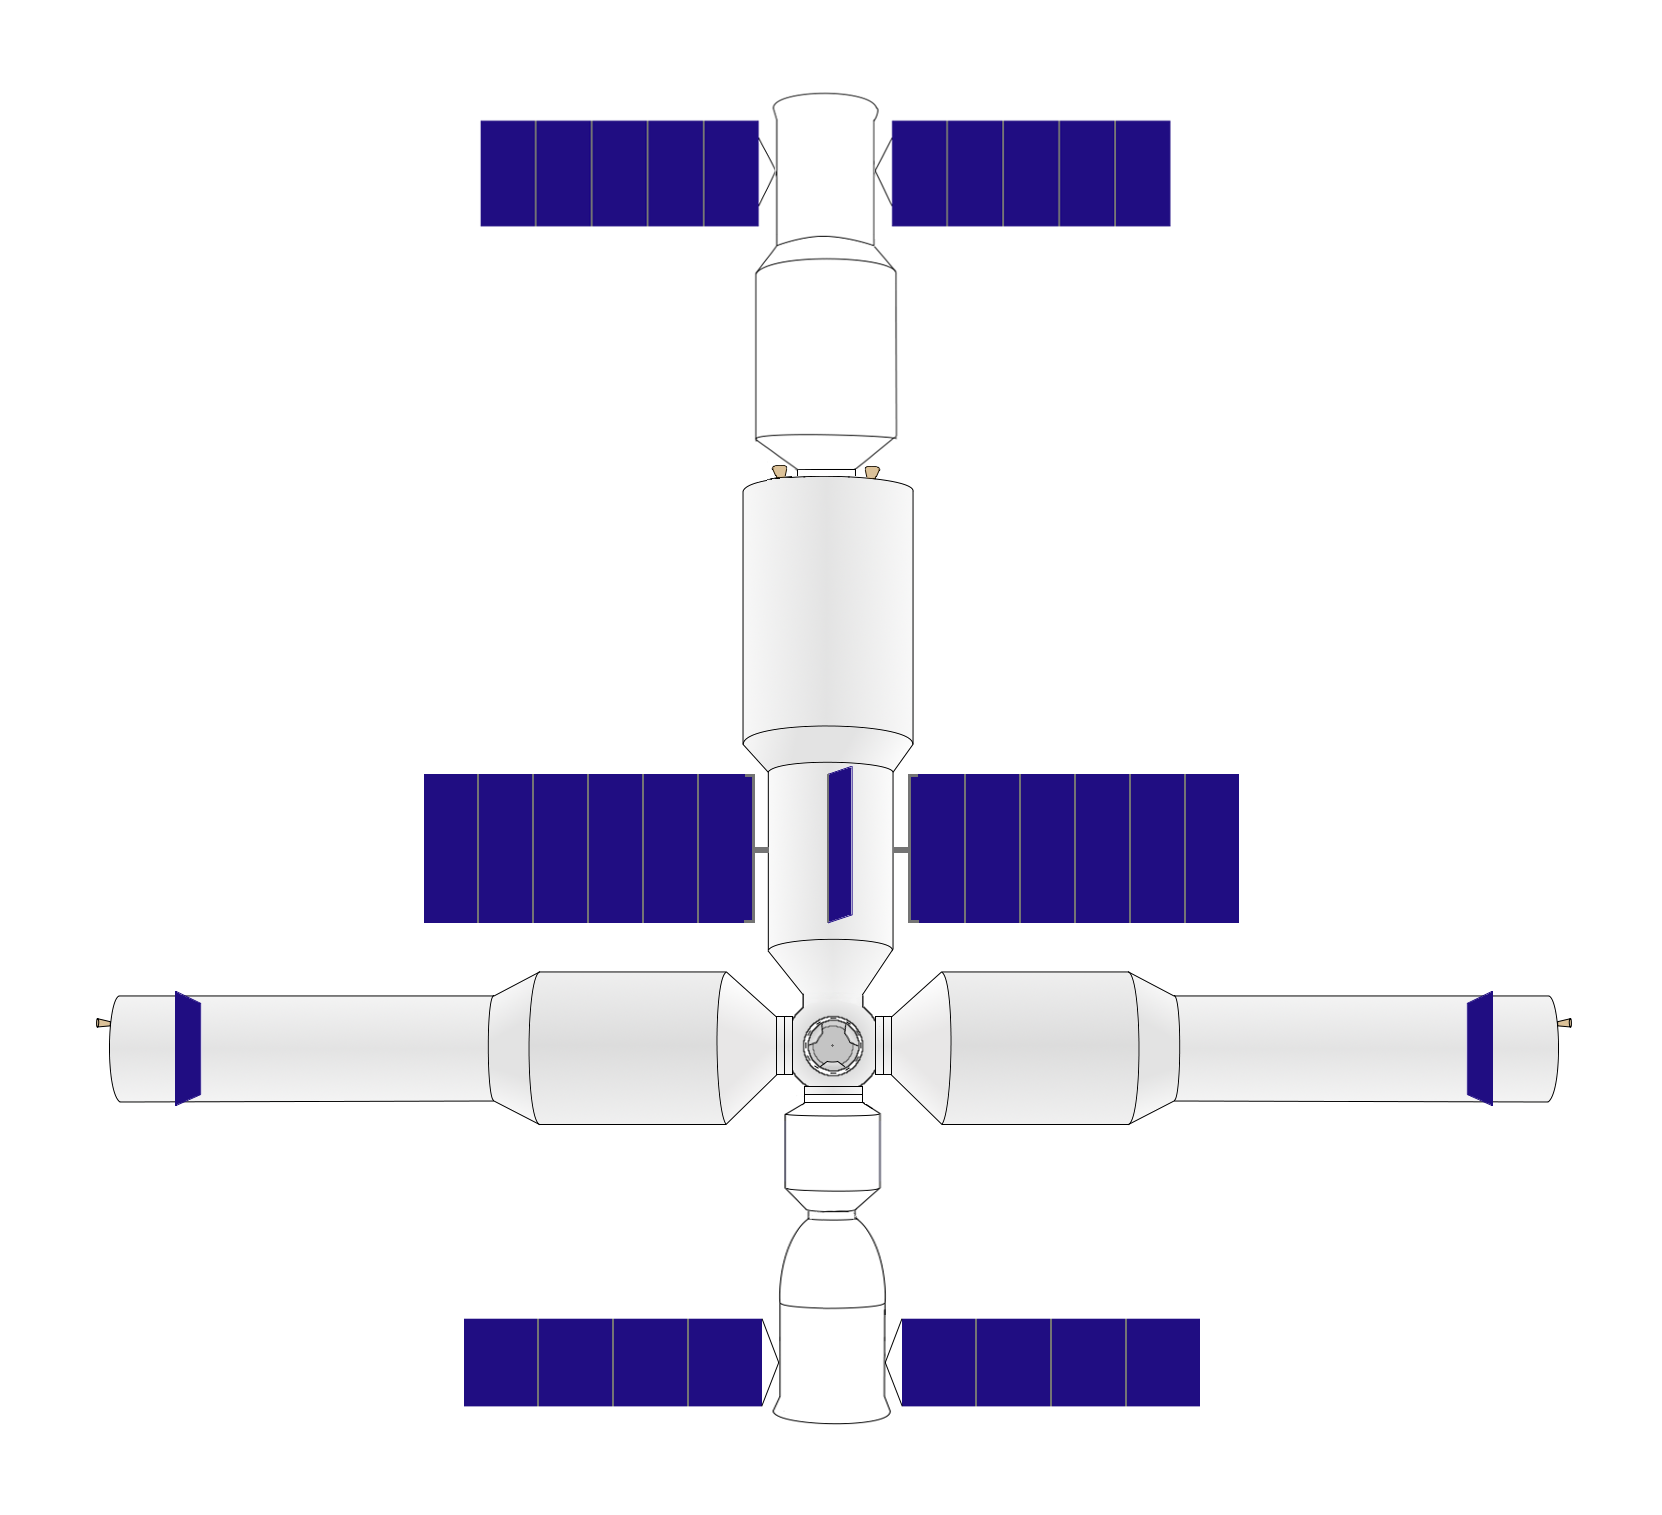 Plan-view diagram of the Chinese space station, which is planned to enter operation in 2020.